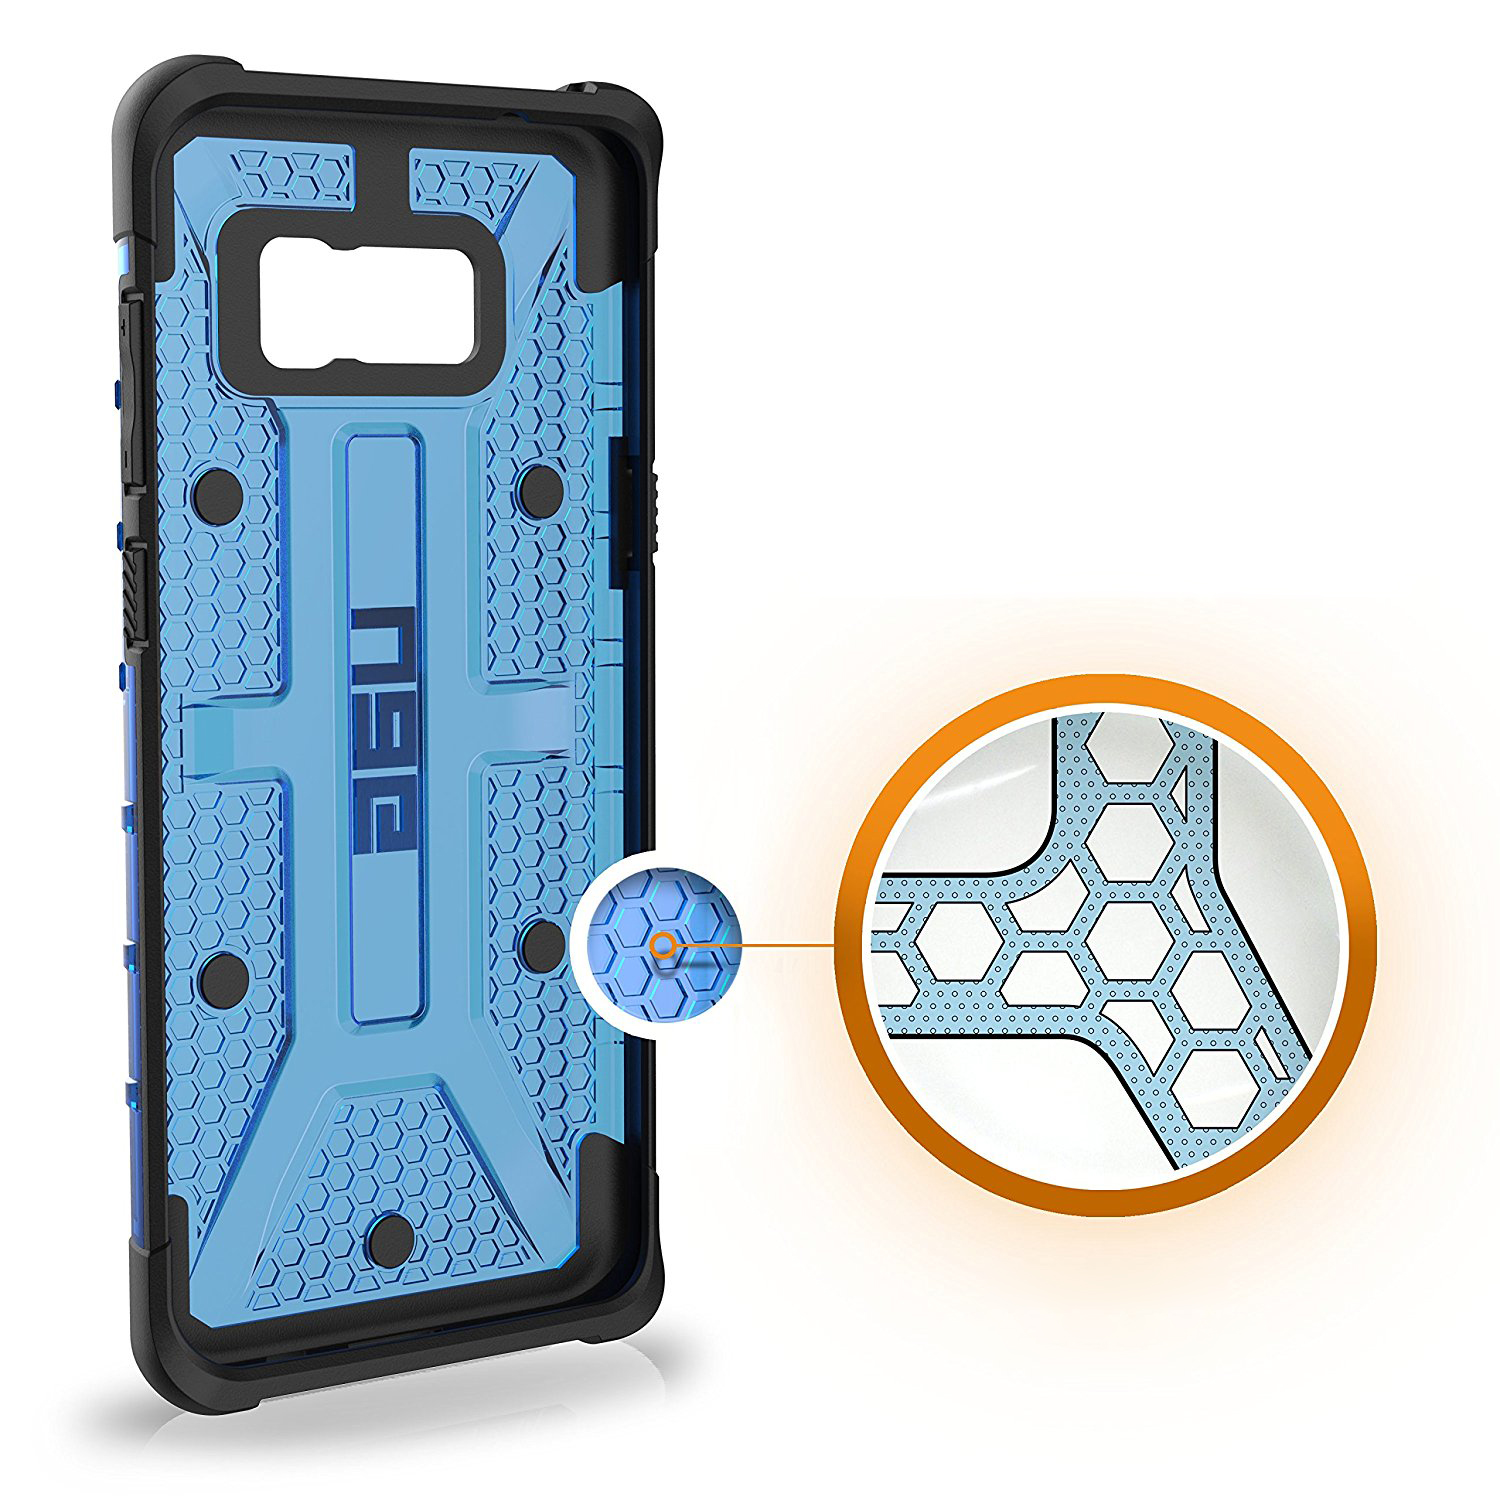 Etui Urban Armor Gear Plasma dla Galaxy S8 Plus case